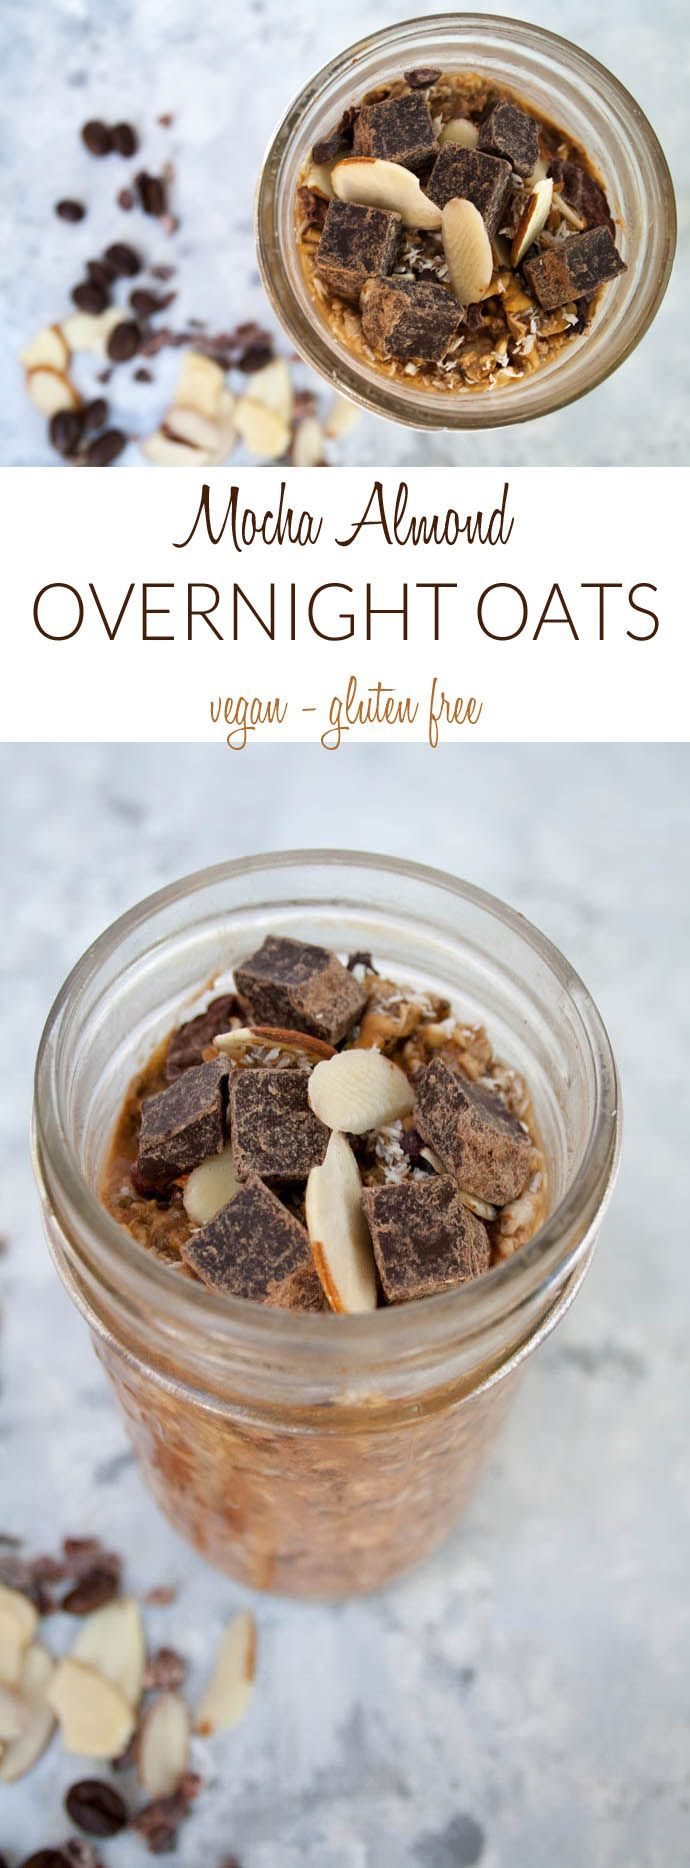 Mocha Almond Overnight Oats (vegan, gluten free) - This recipe is perfect for traveling or on the go. You get coffee and breakfast all in one! Almond Overnight Oats (vegan, gluten free) - This recipe is perfect for traveling or on the go. You get coffee and breakfast all in one!